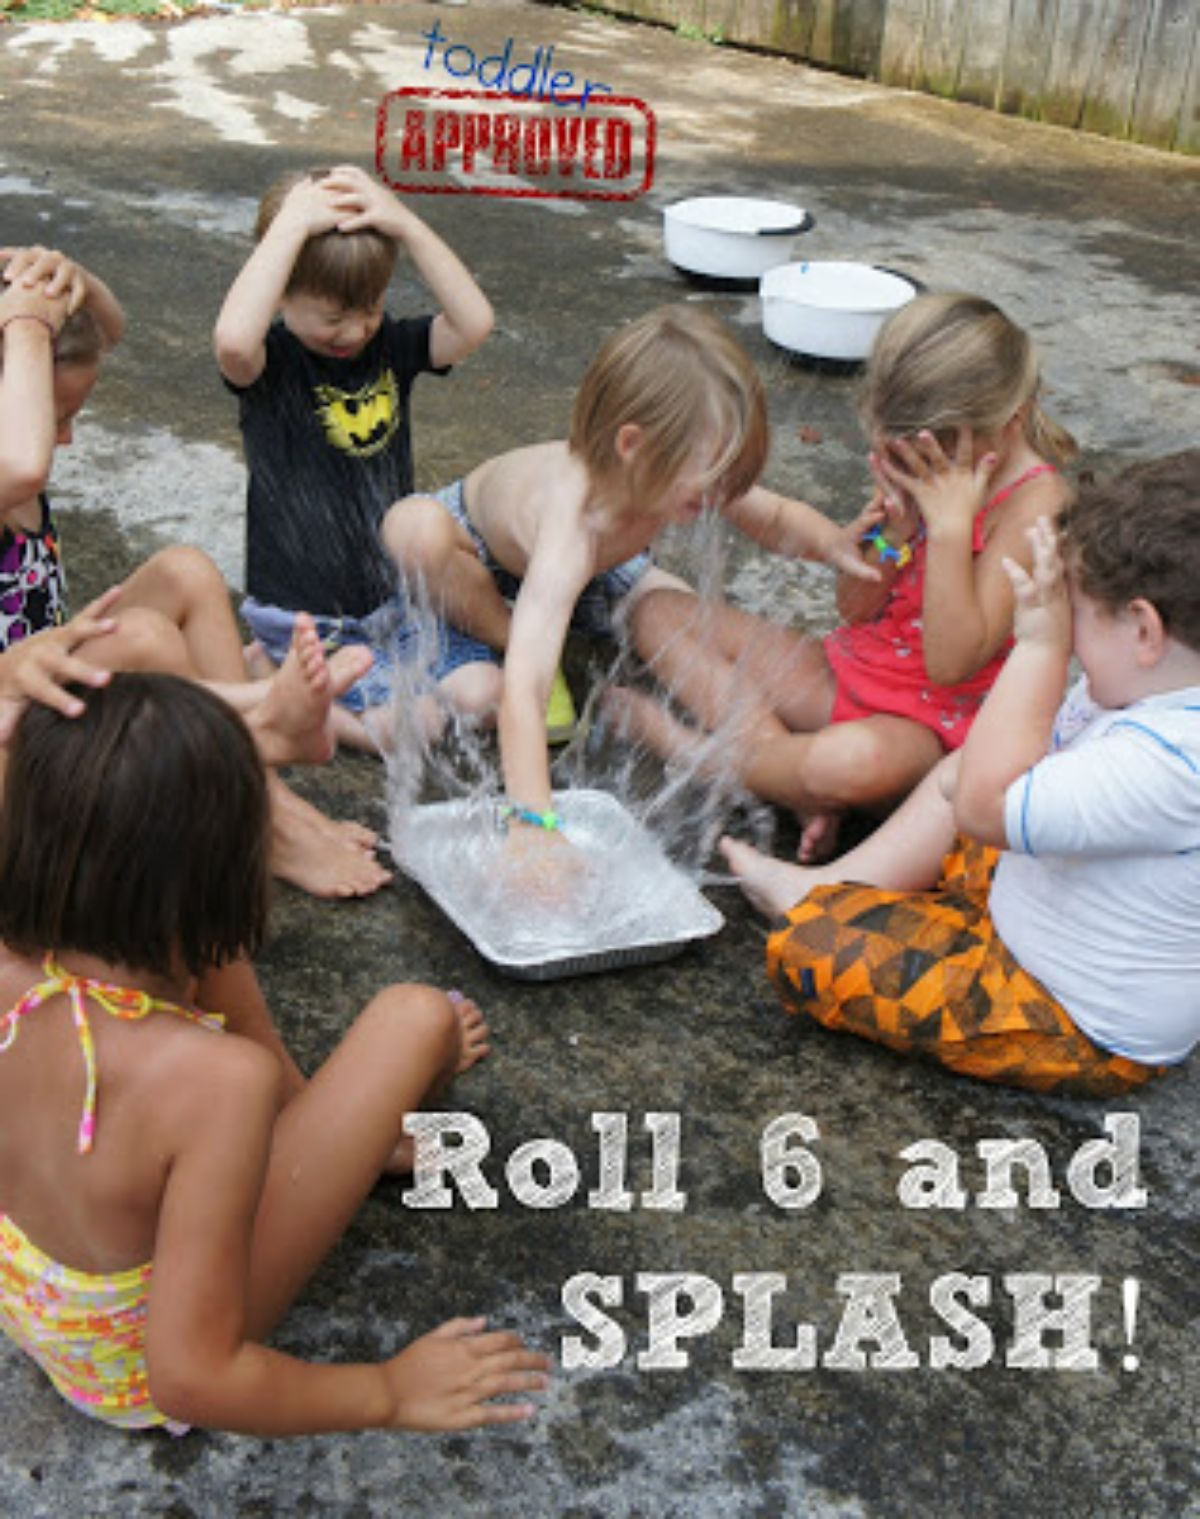 """The text reads """"Roll 6 and Splash! Toddler approved"""" 6 children sit in a circle with hands over their faces. One child is slapping water in a white tray"""